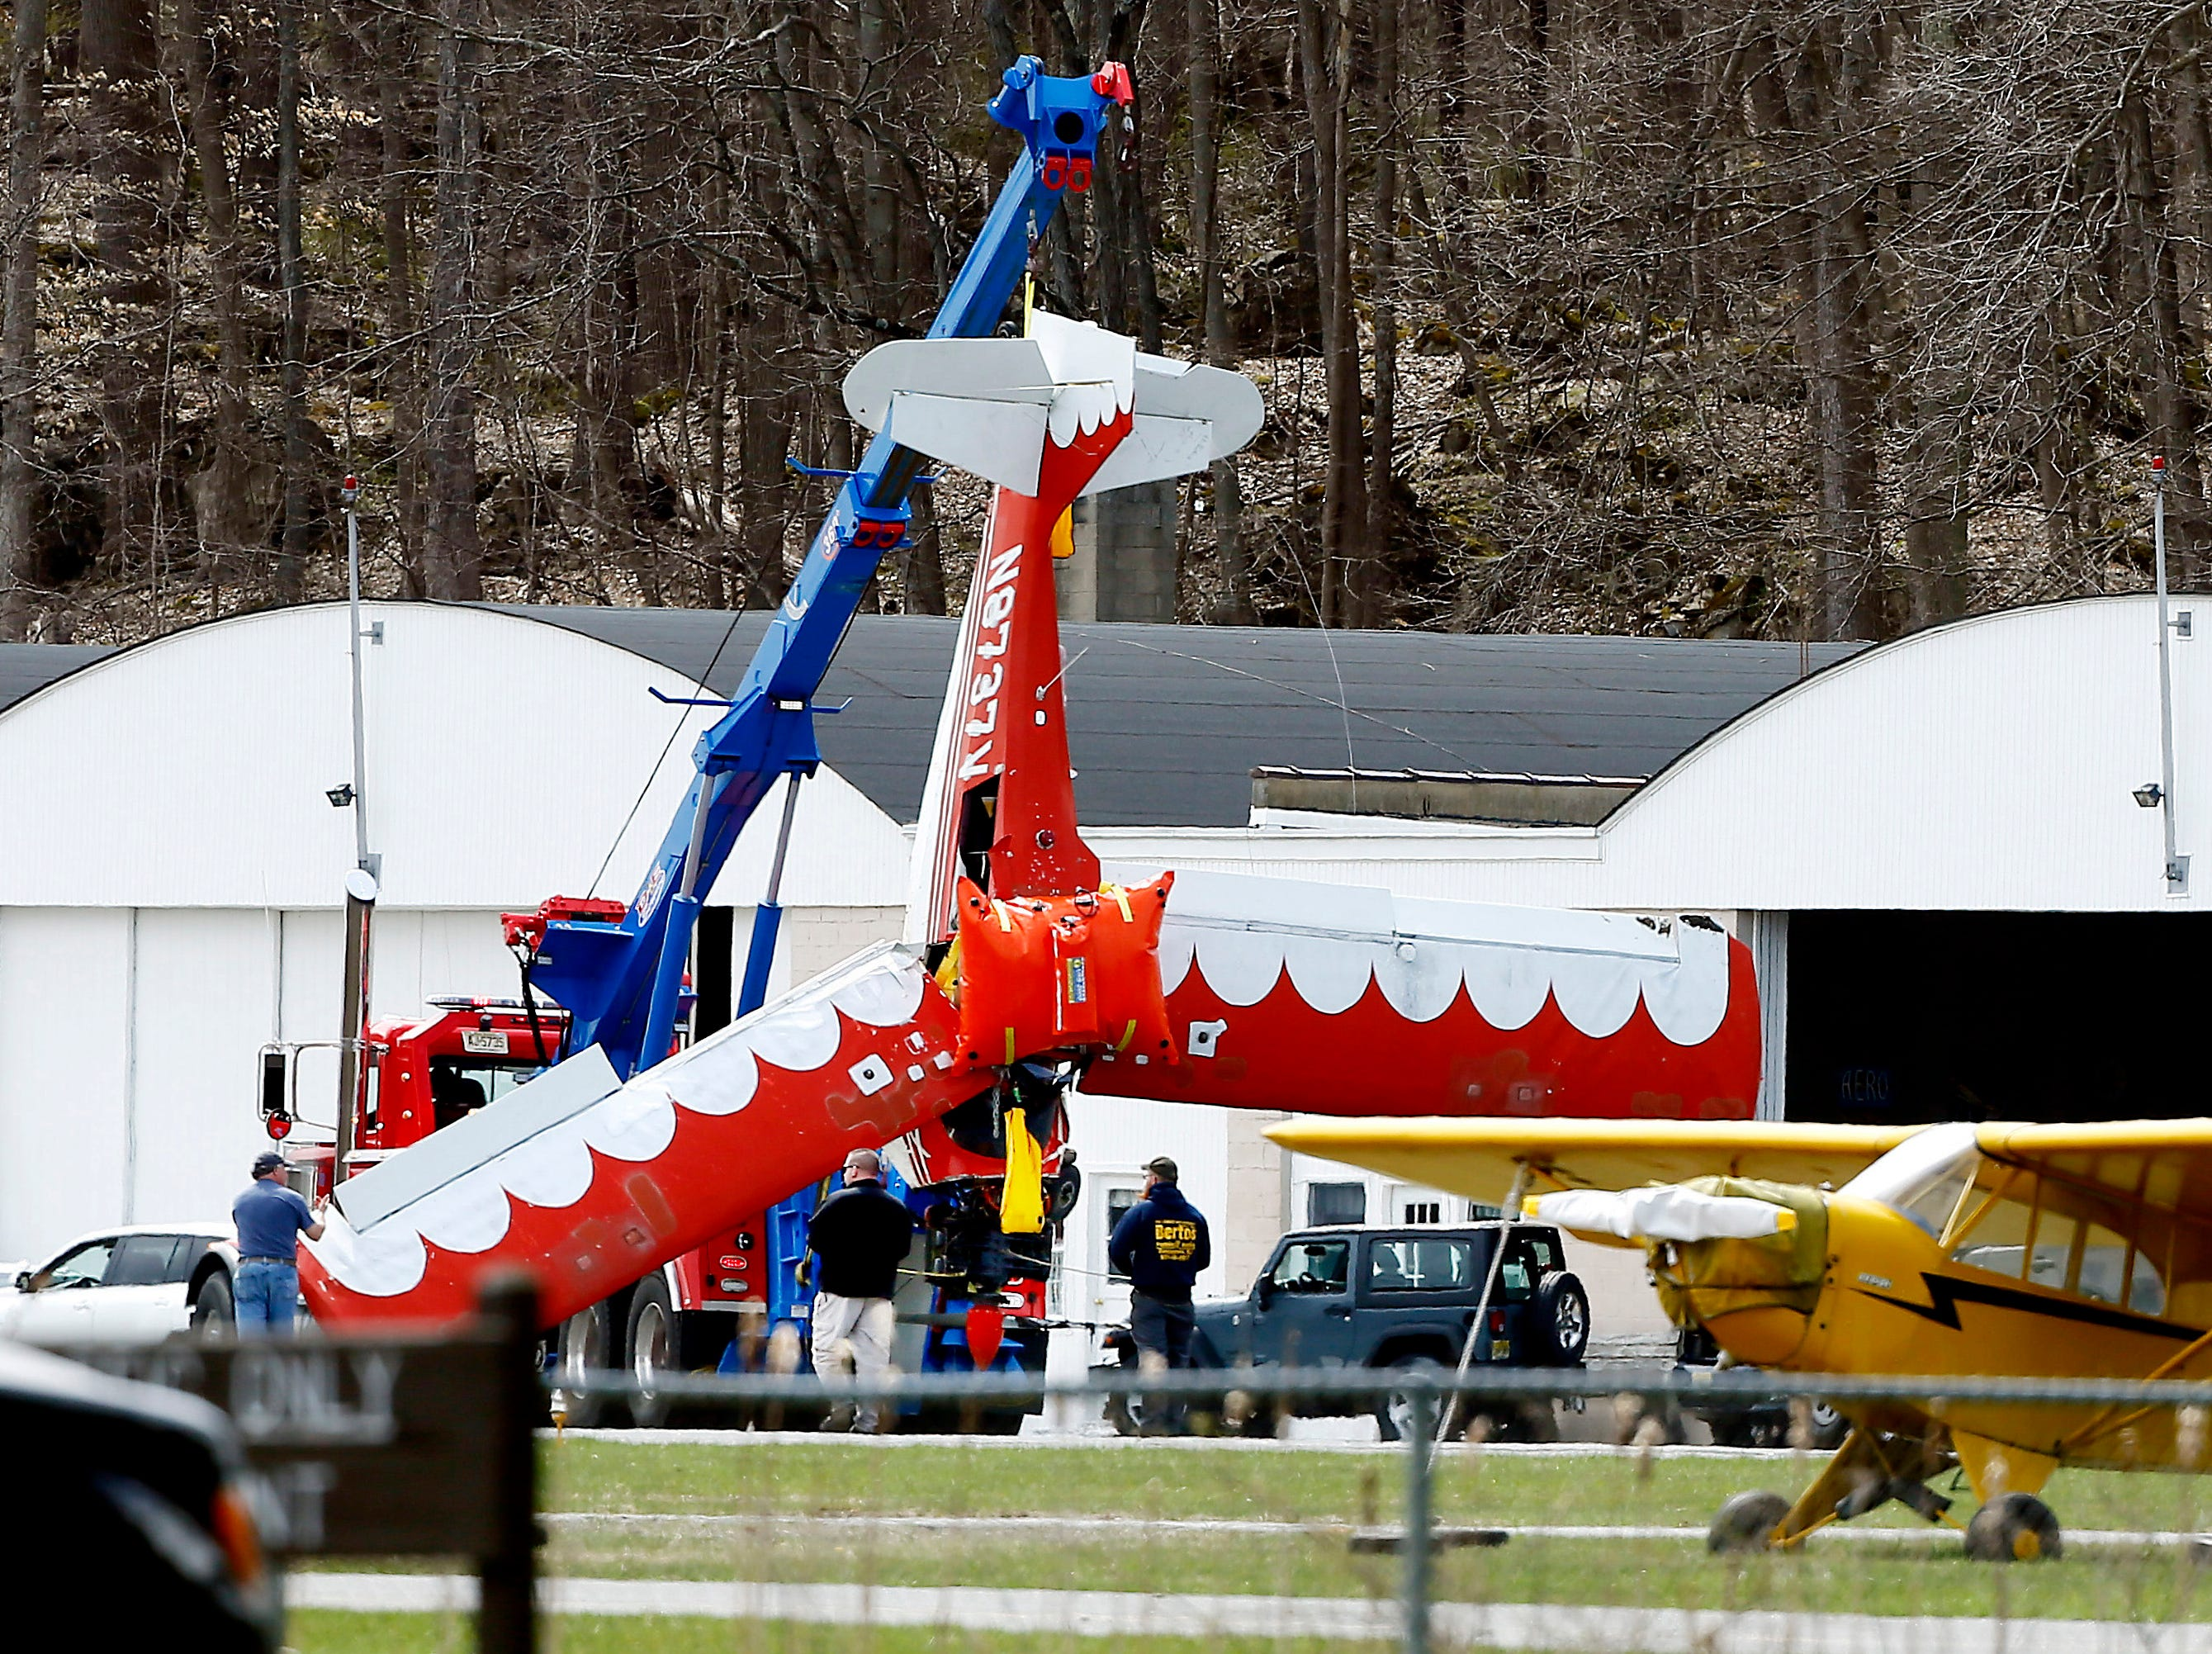 A two-seat Bellanca CH7A that crash landed in the middle of the 119-acre Lake Aeroflex at Kittatiinny Valley State Park on Monday morning was towed to a hanger at Aeroflex-Andover Airport after it was pulled from the water. April 24, 2018 Andover Twp, NJ